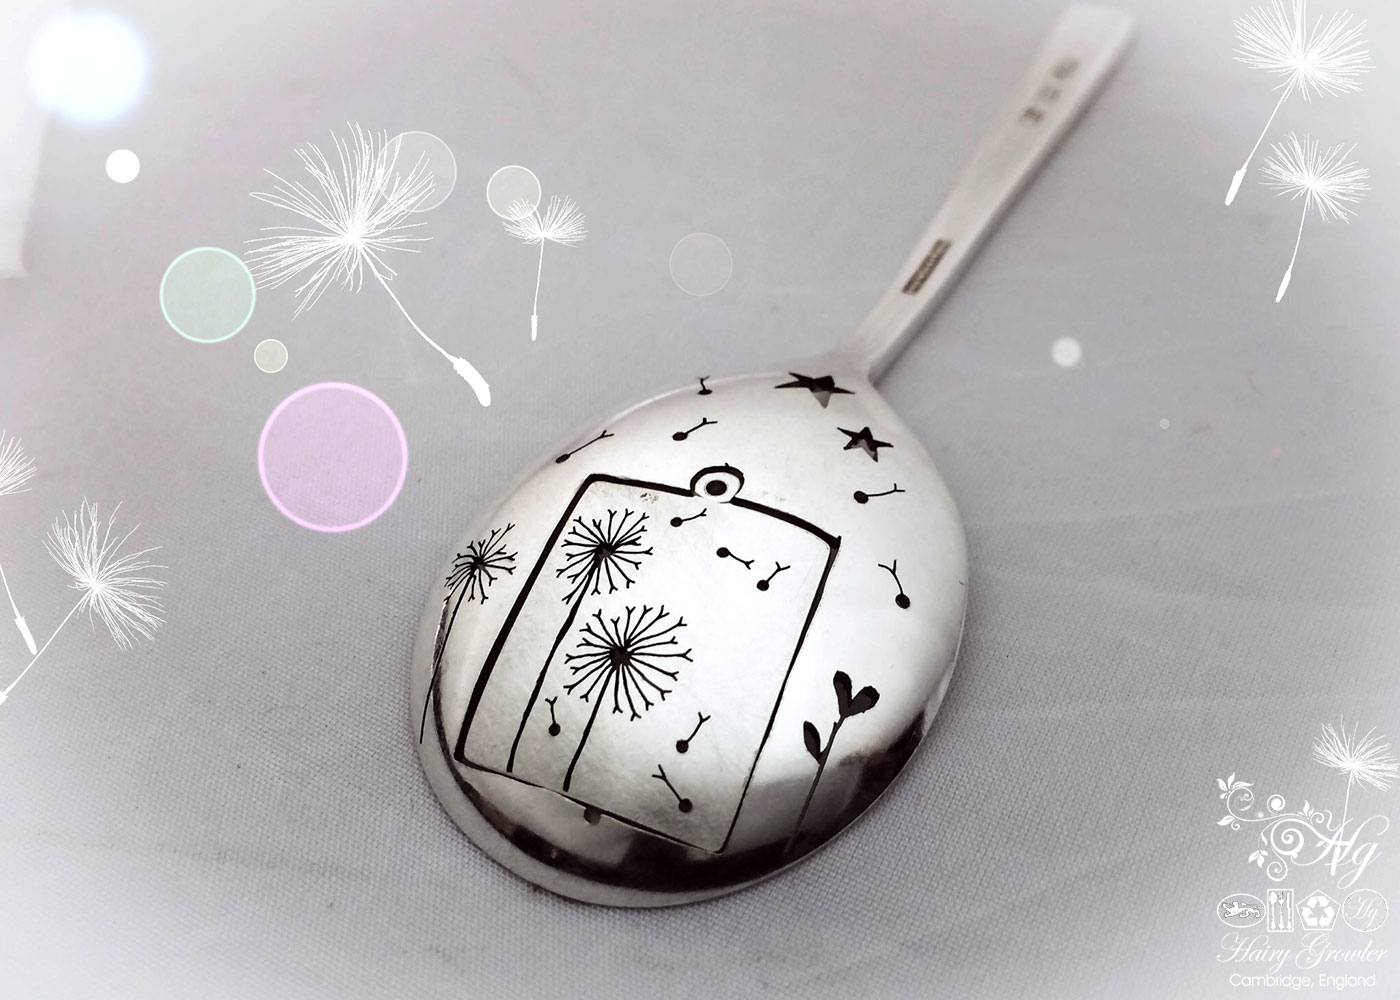 Handmade and upcycled dandelion clock necklace reverse of spoon